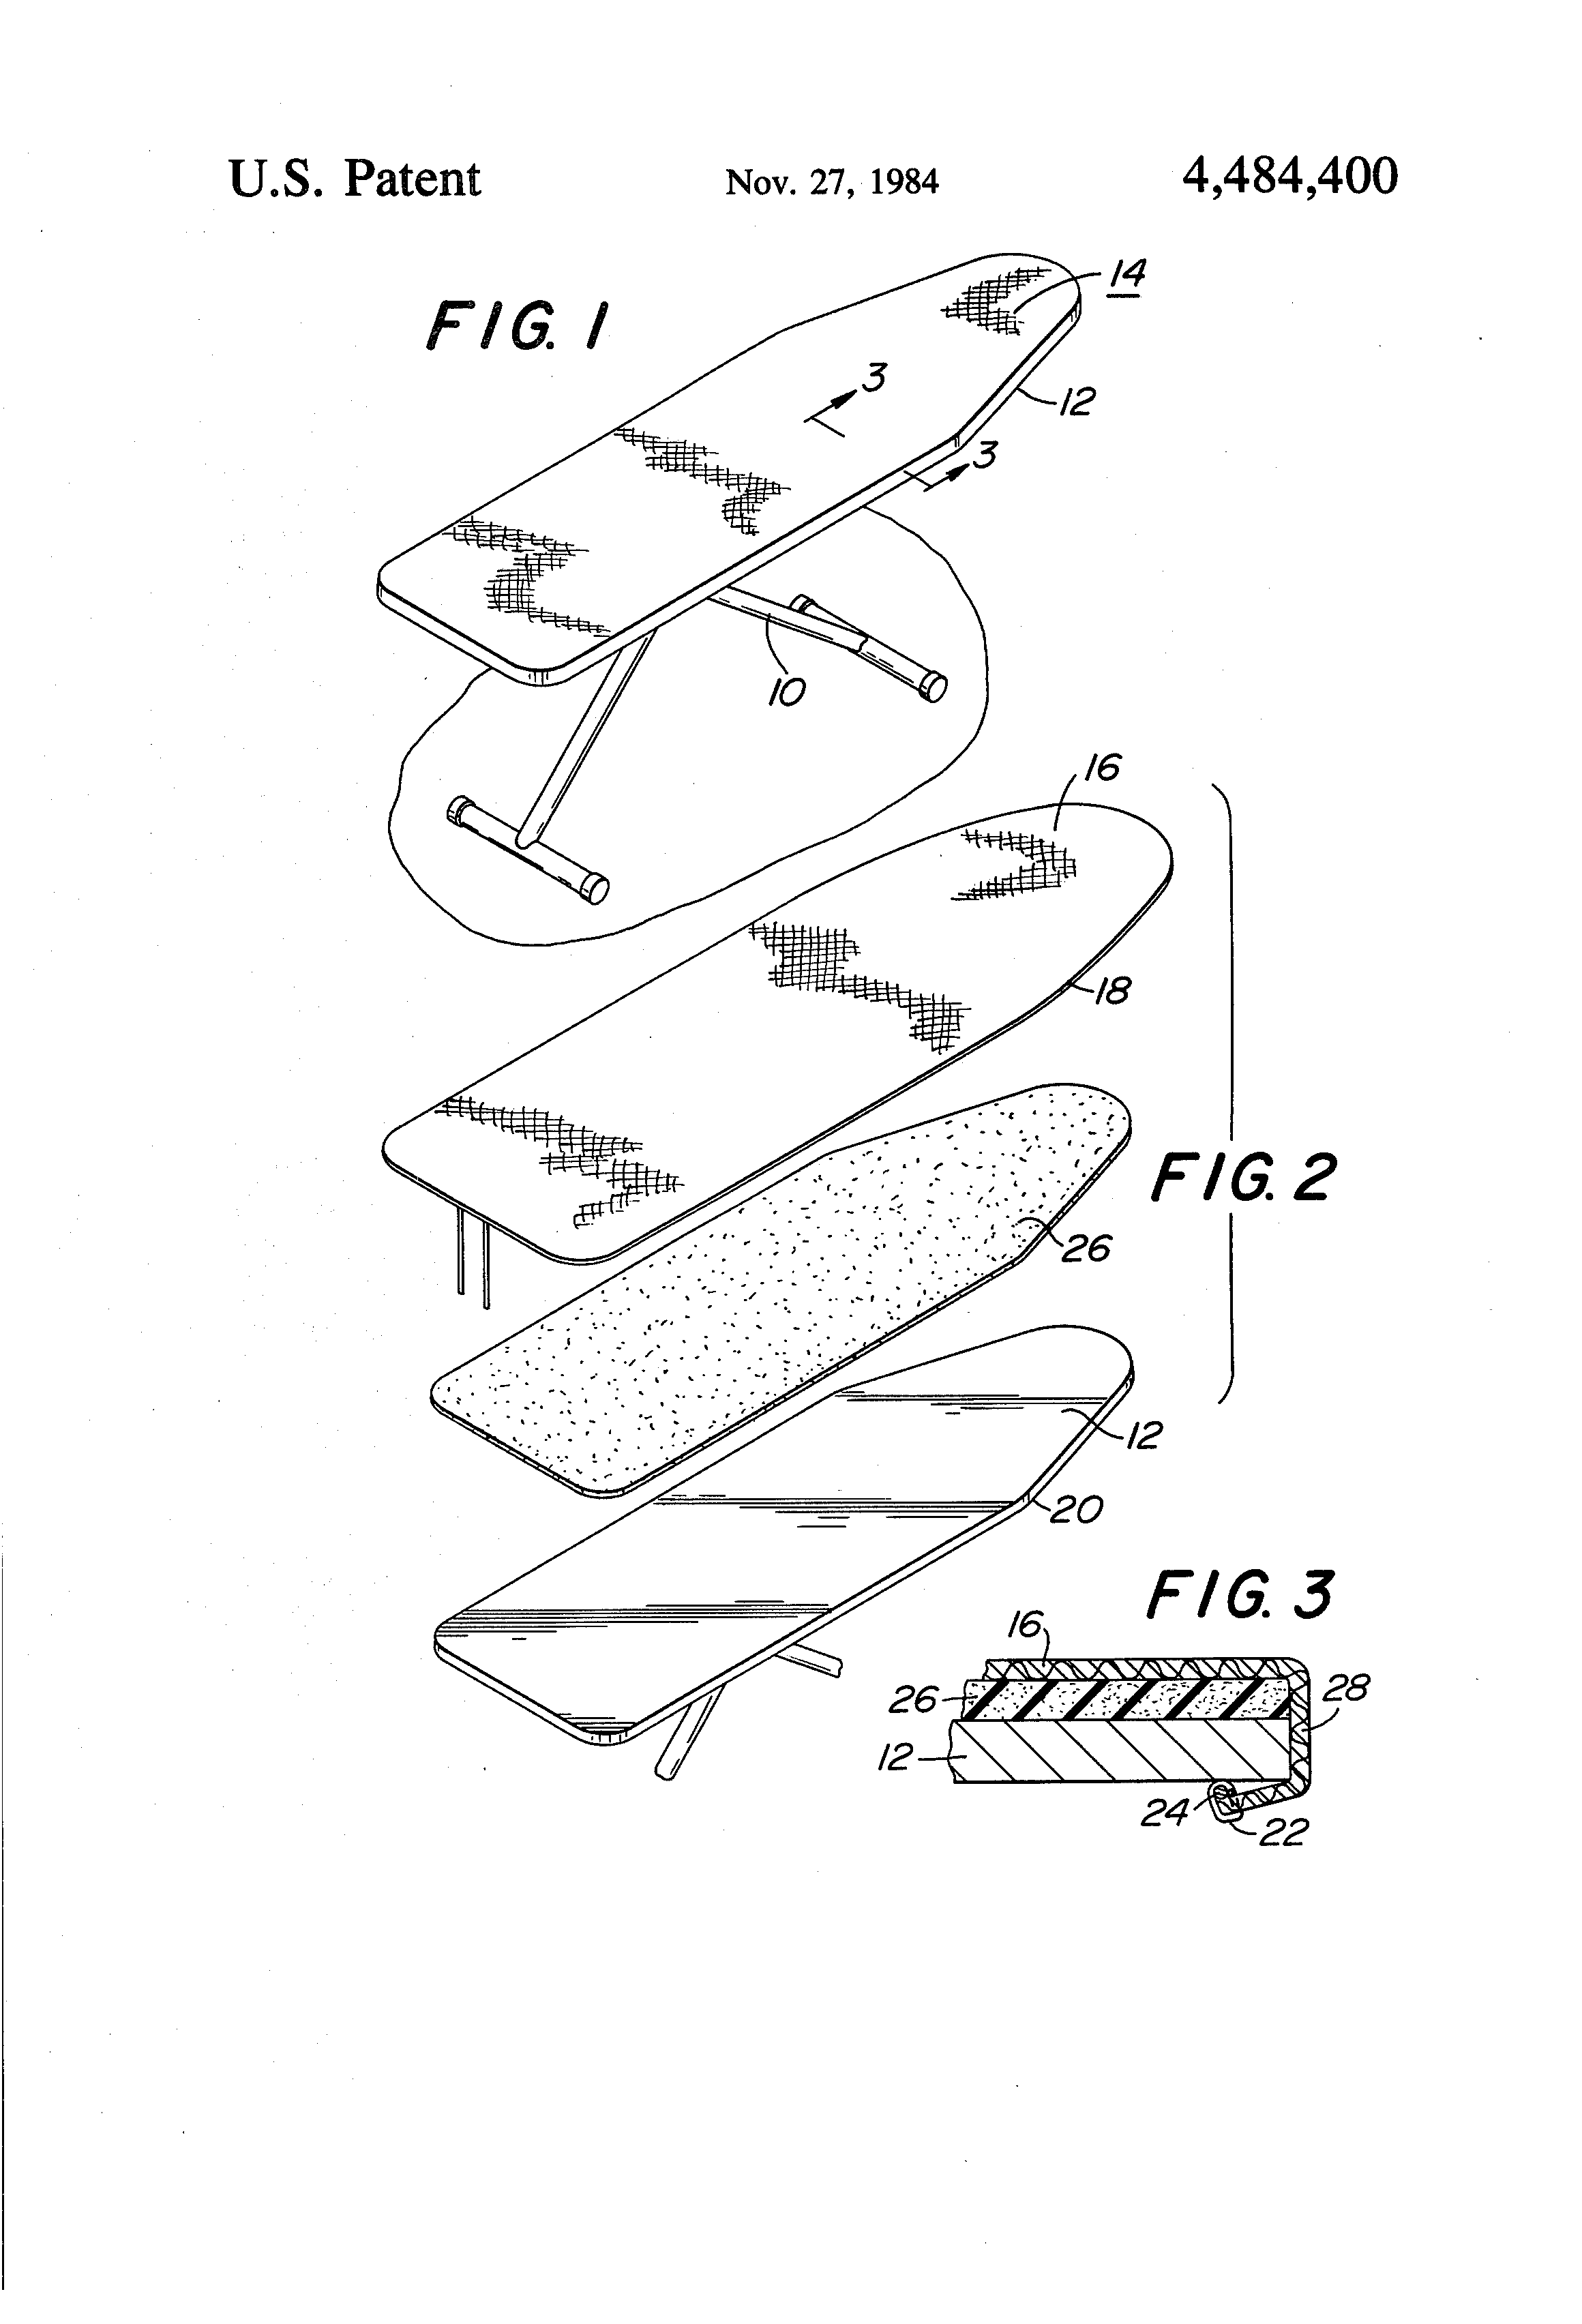 Us4484400 Copper Metallized Fabric For An Ironing Bobber Kz650 Wiring Diagram Patent Drawing